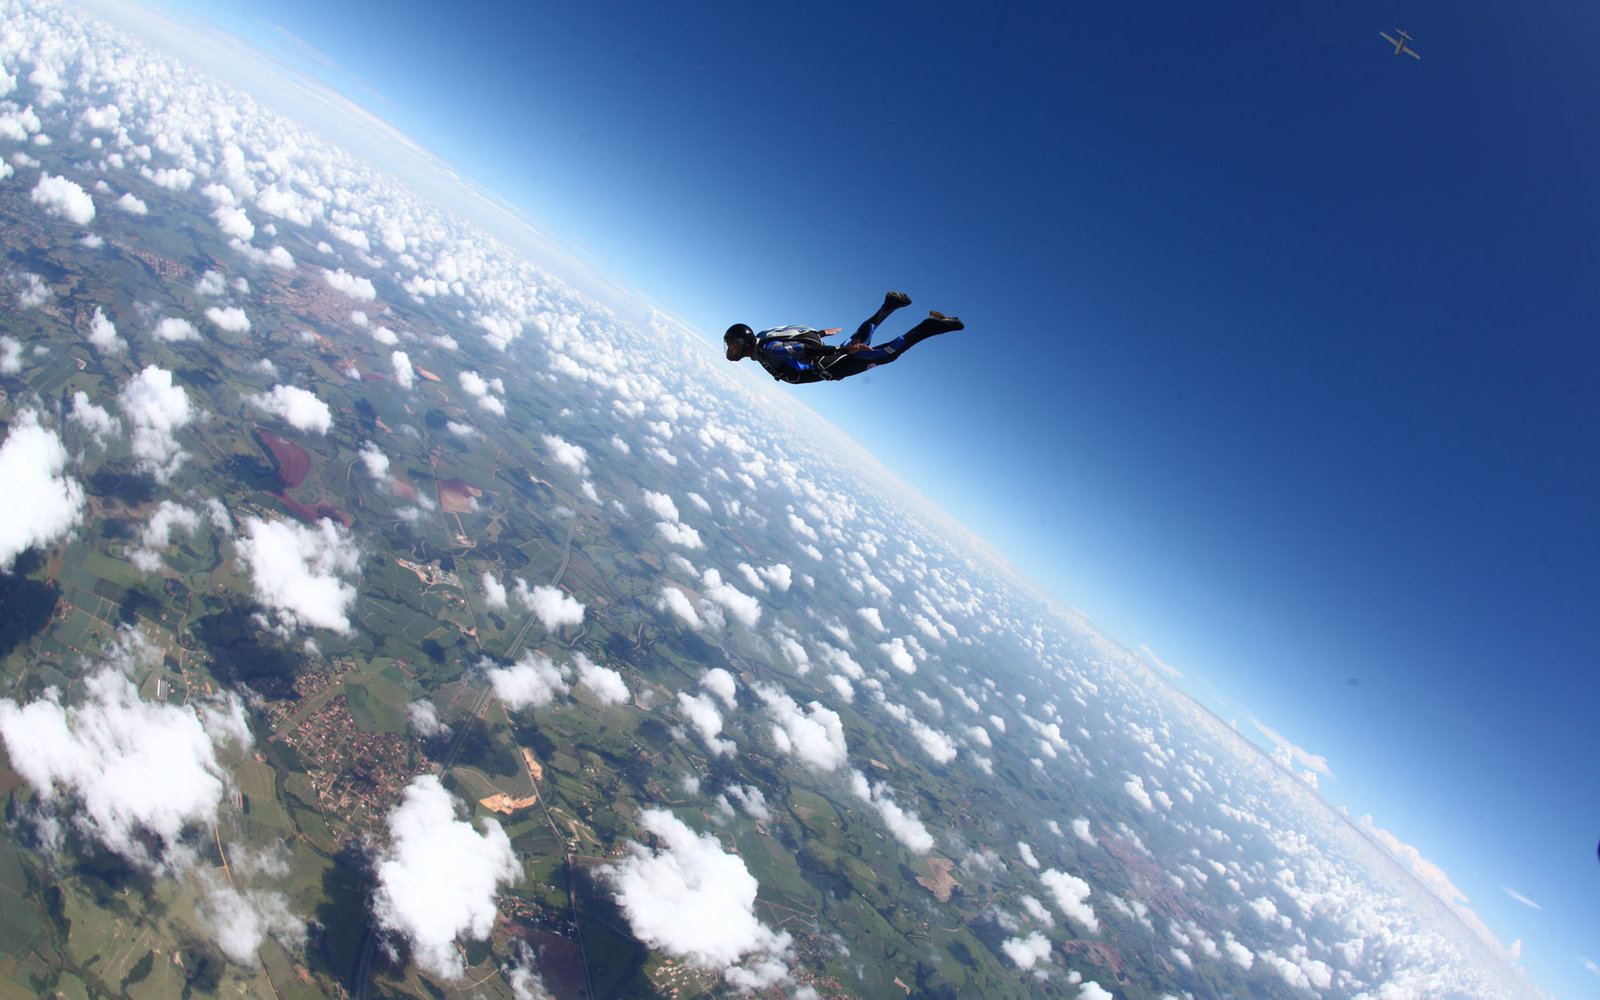 A skydiver high above the Earth.